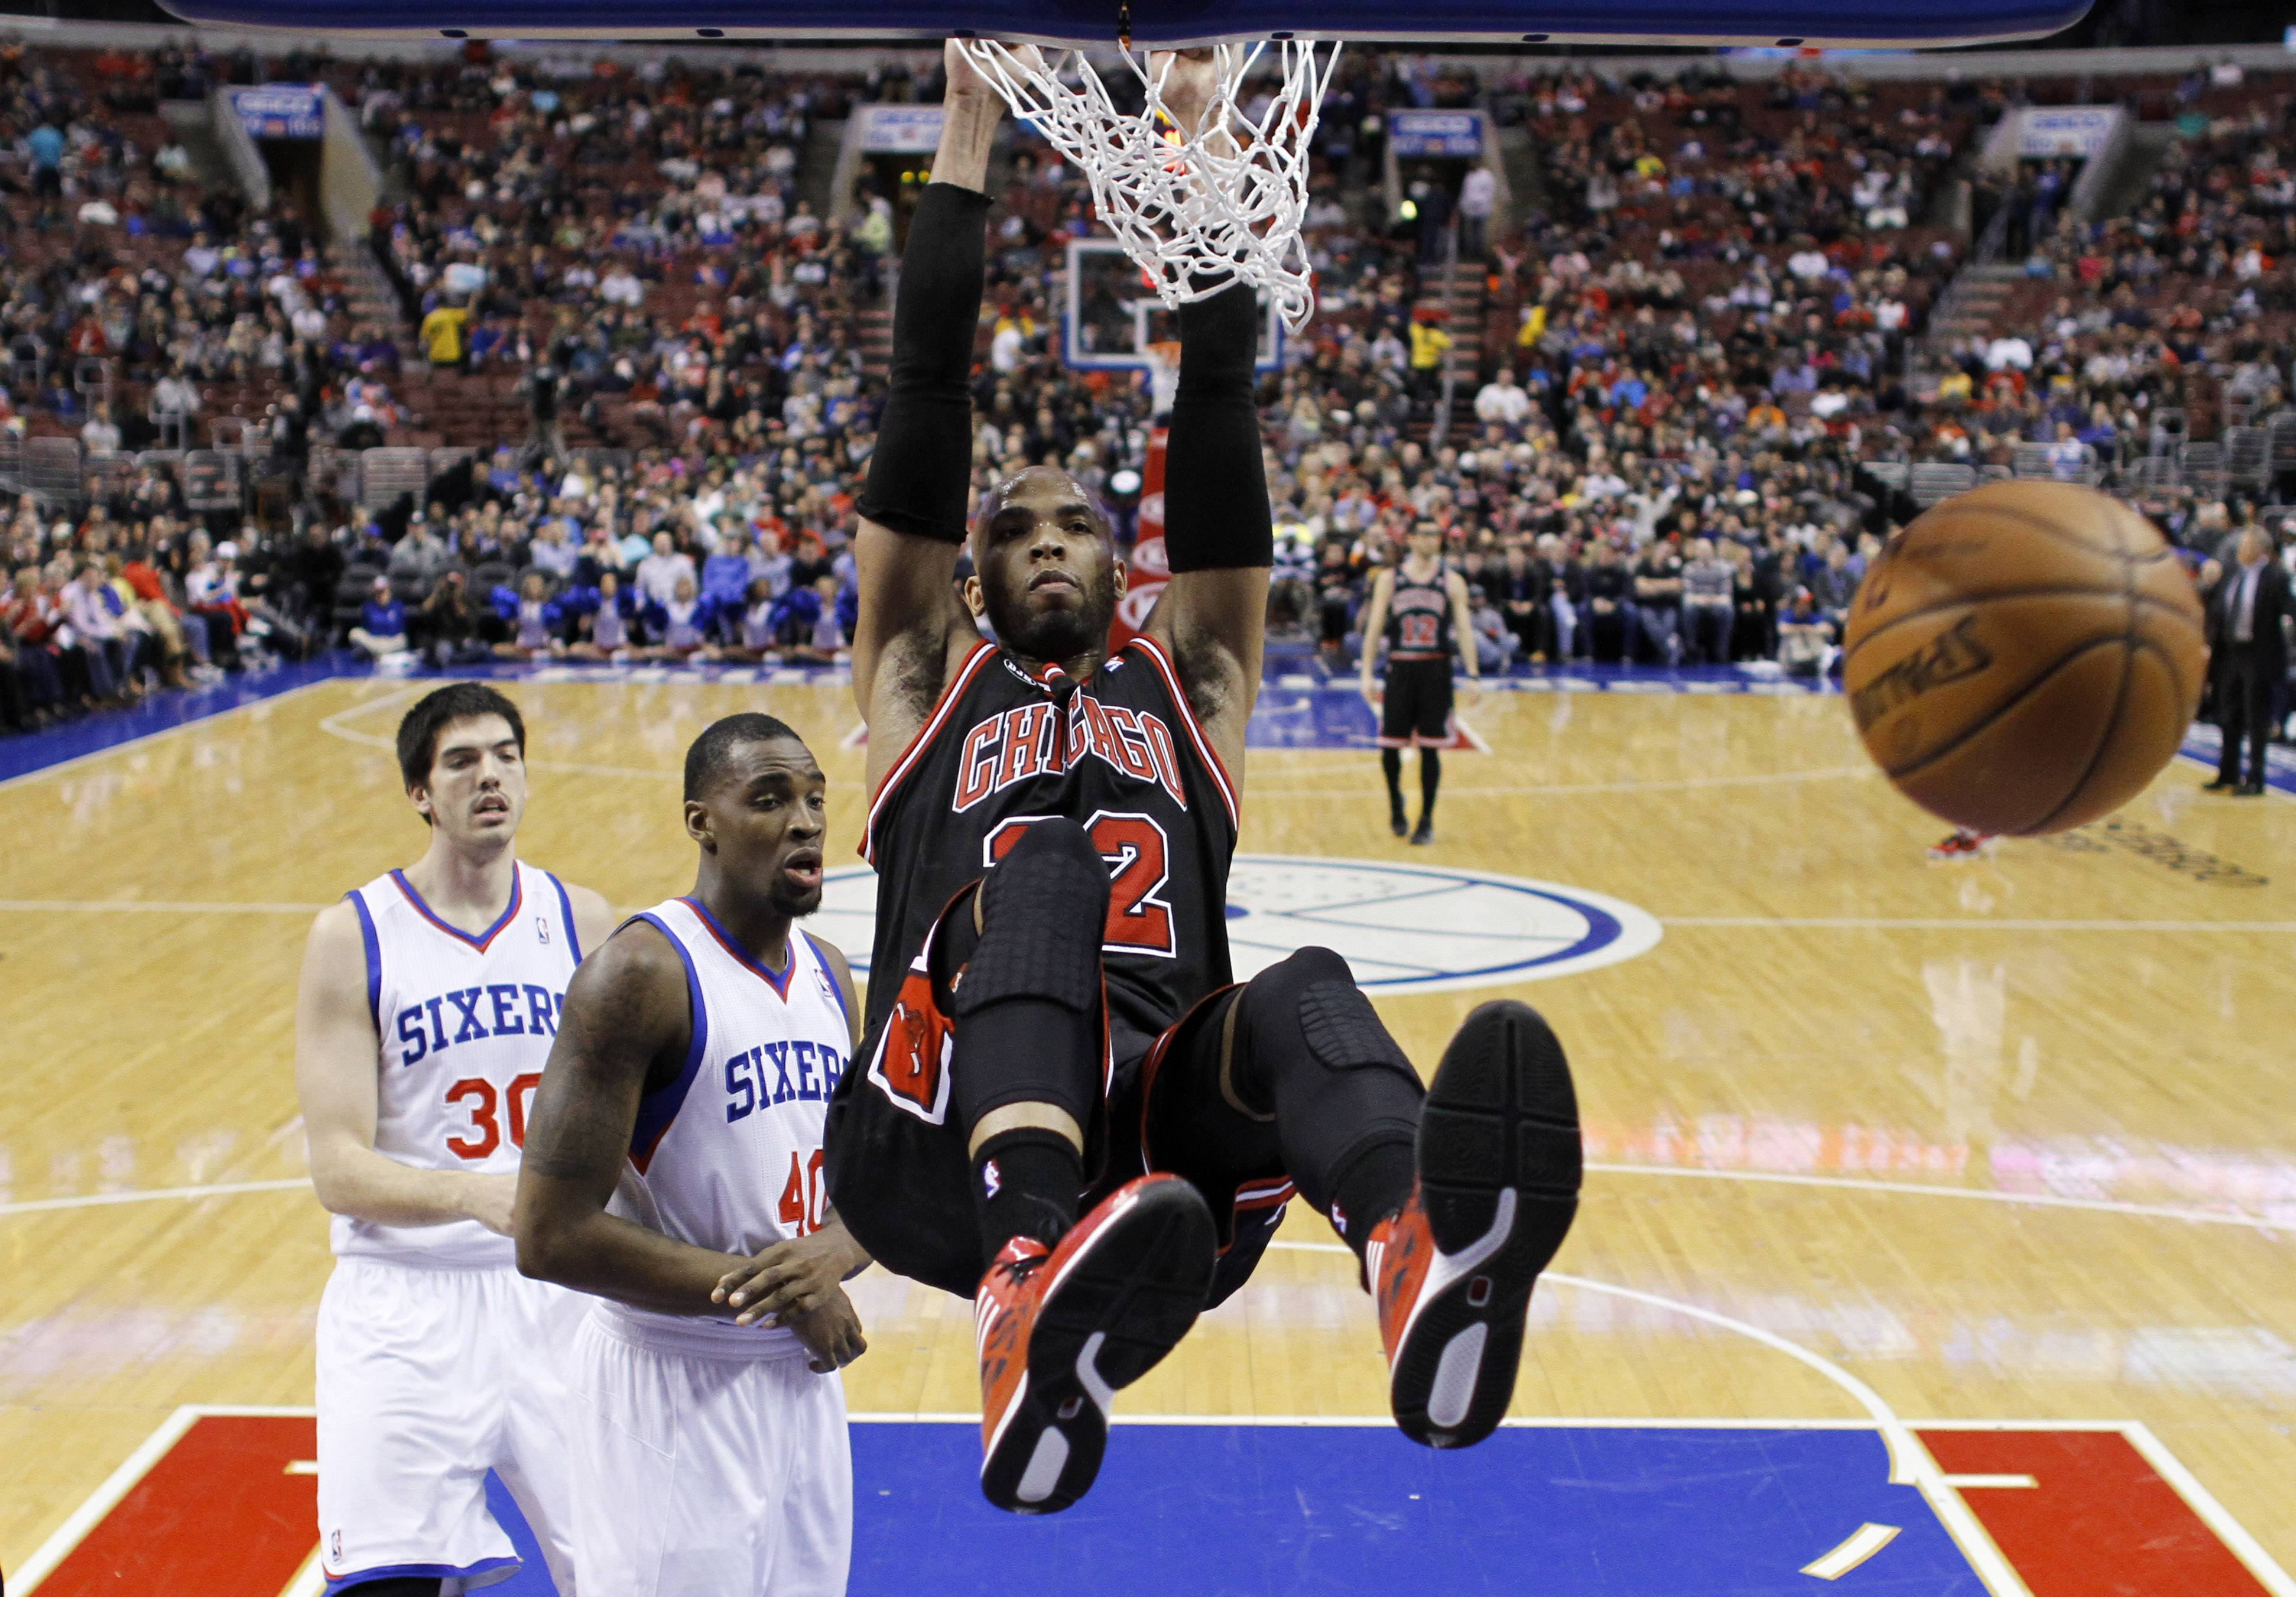 Chicago Bulls' Taj Gibson (22) hangs on the rim after dunking the ball against Philadelphia 76ers' Jarvis Varnado (40) and Byron Mullens (30) during the first half of an NBA basketball game, Wednesday in Philadelphia.